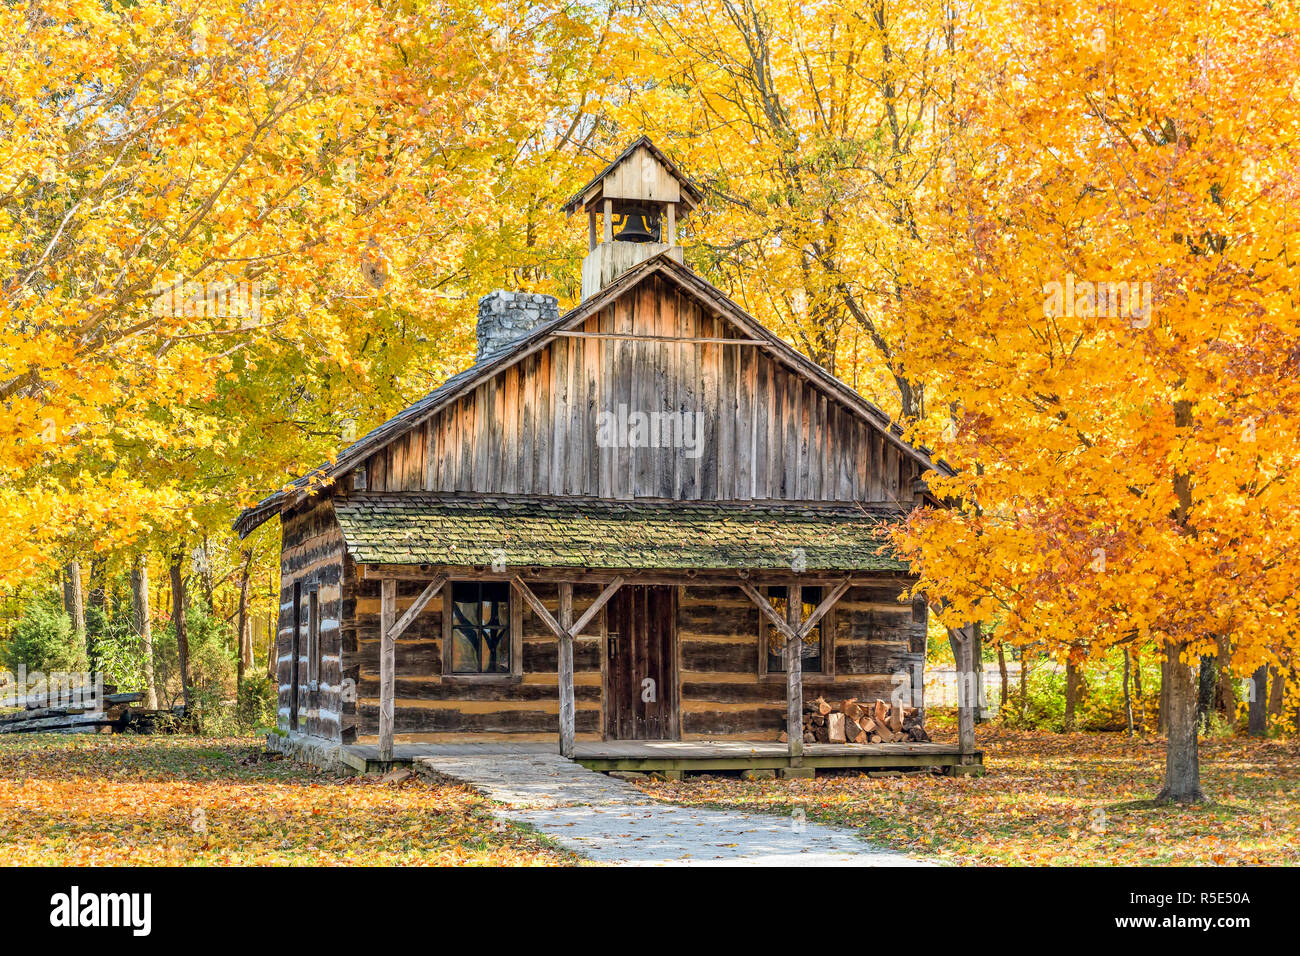 A log church is surrounded by colorful autumn trees in an Indiana park. Stock Photo